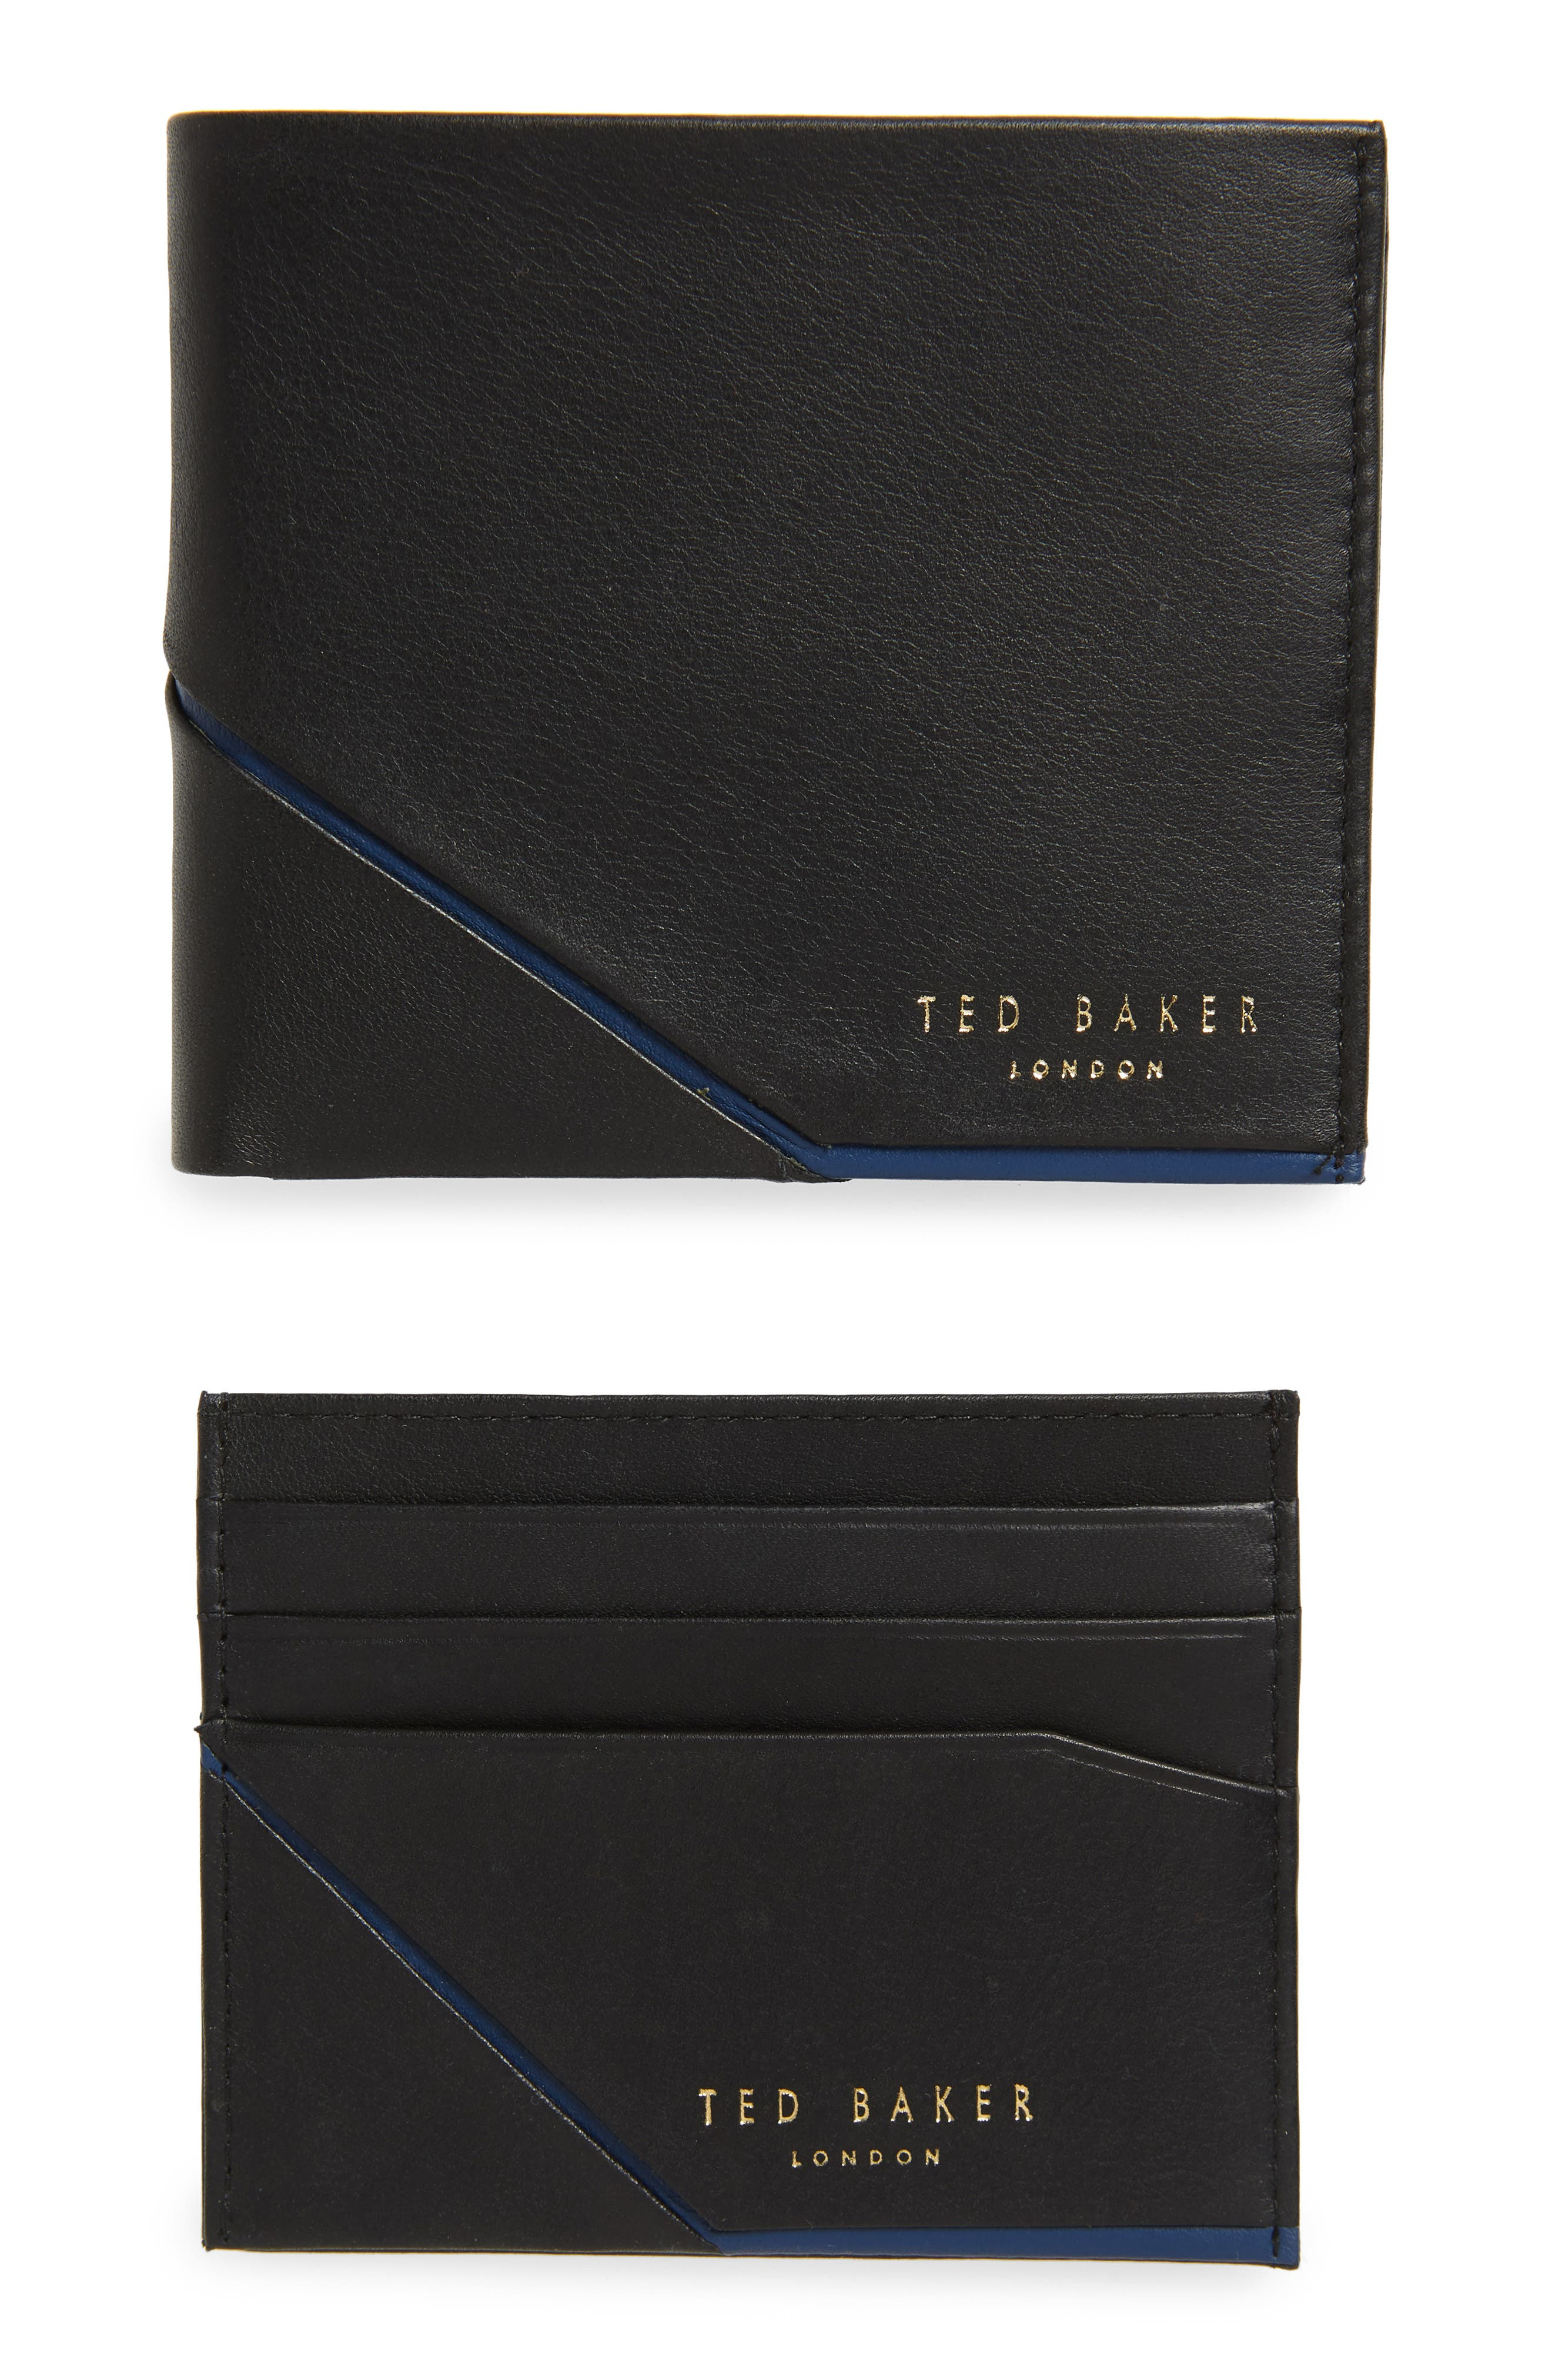 180ae19d1bb7 Men s Ted Baker London Wallets